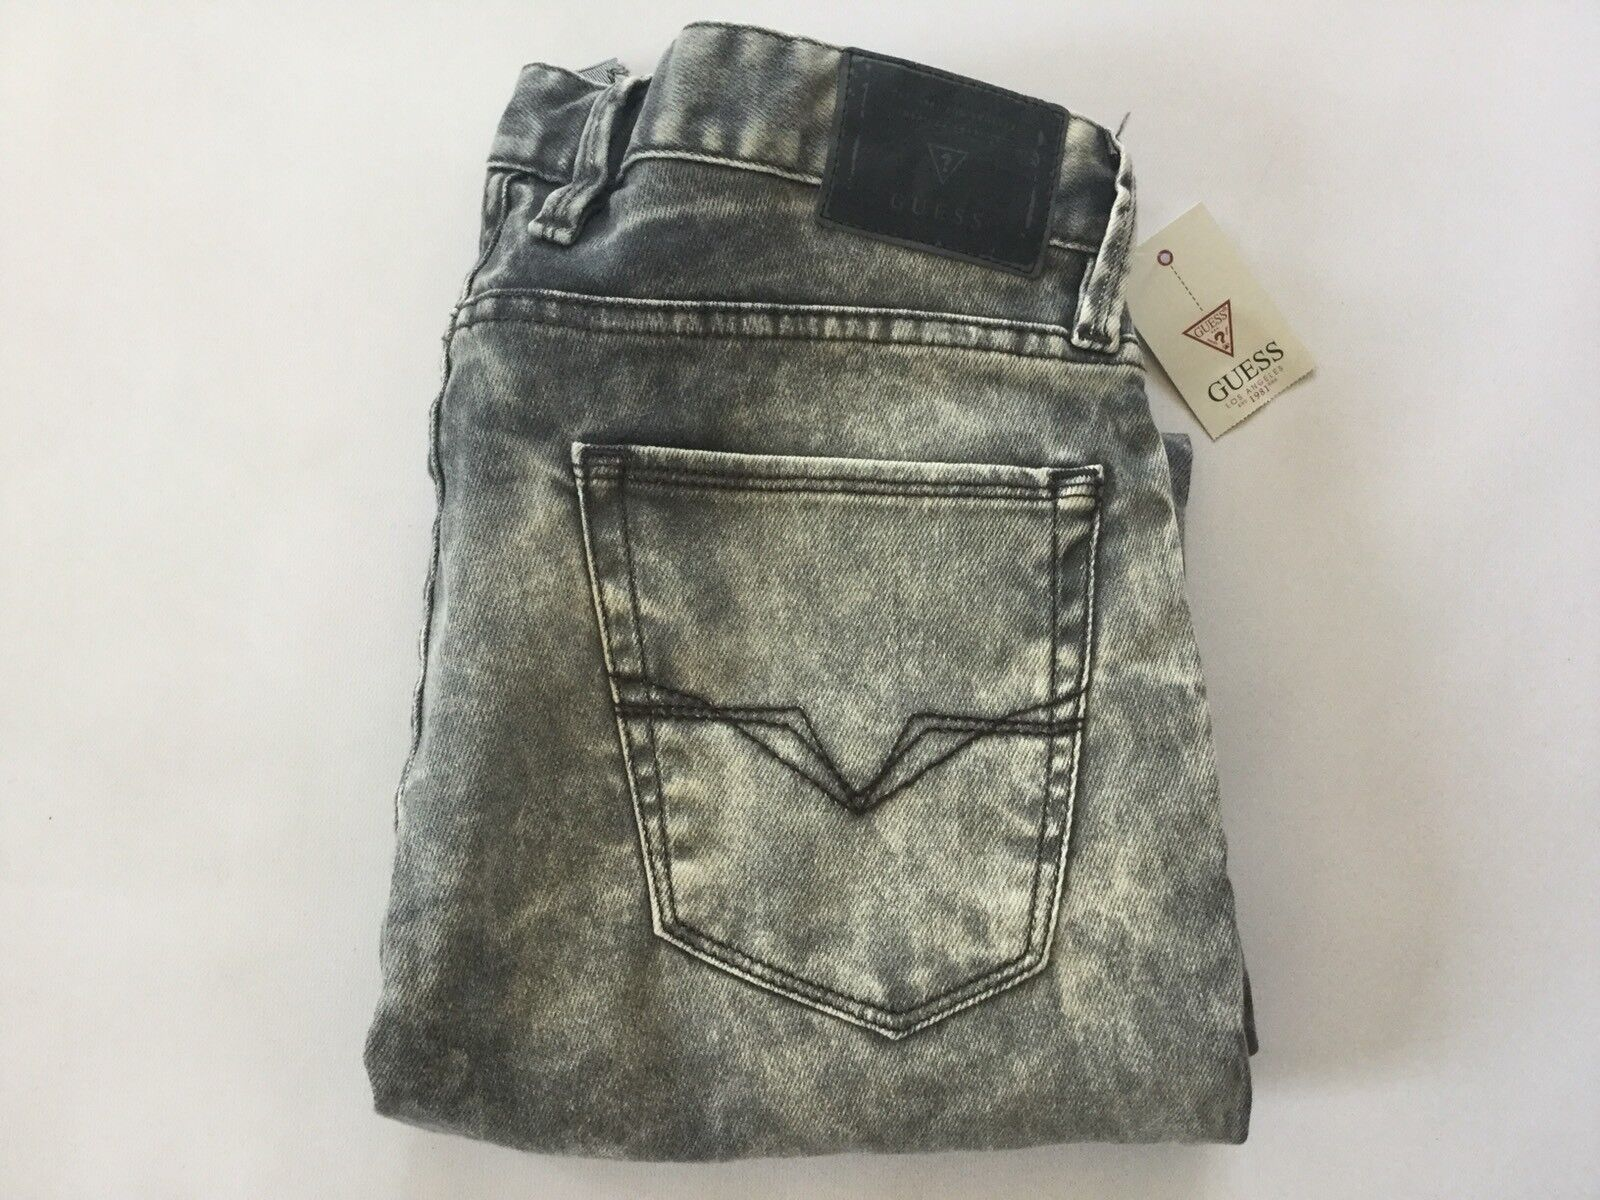 Guess Men's Slim Straight Jeans In Metropolis Grey Wash Size 31X30